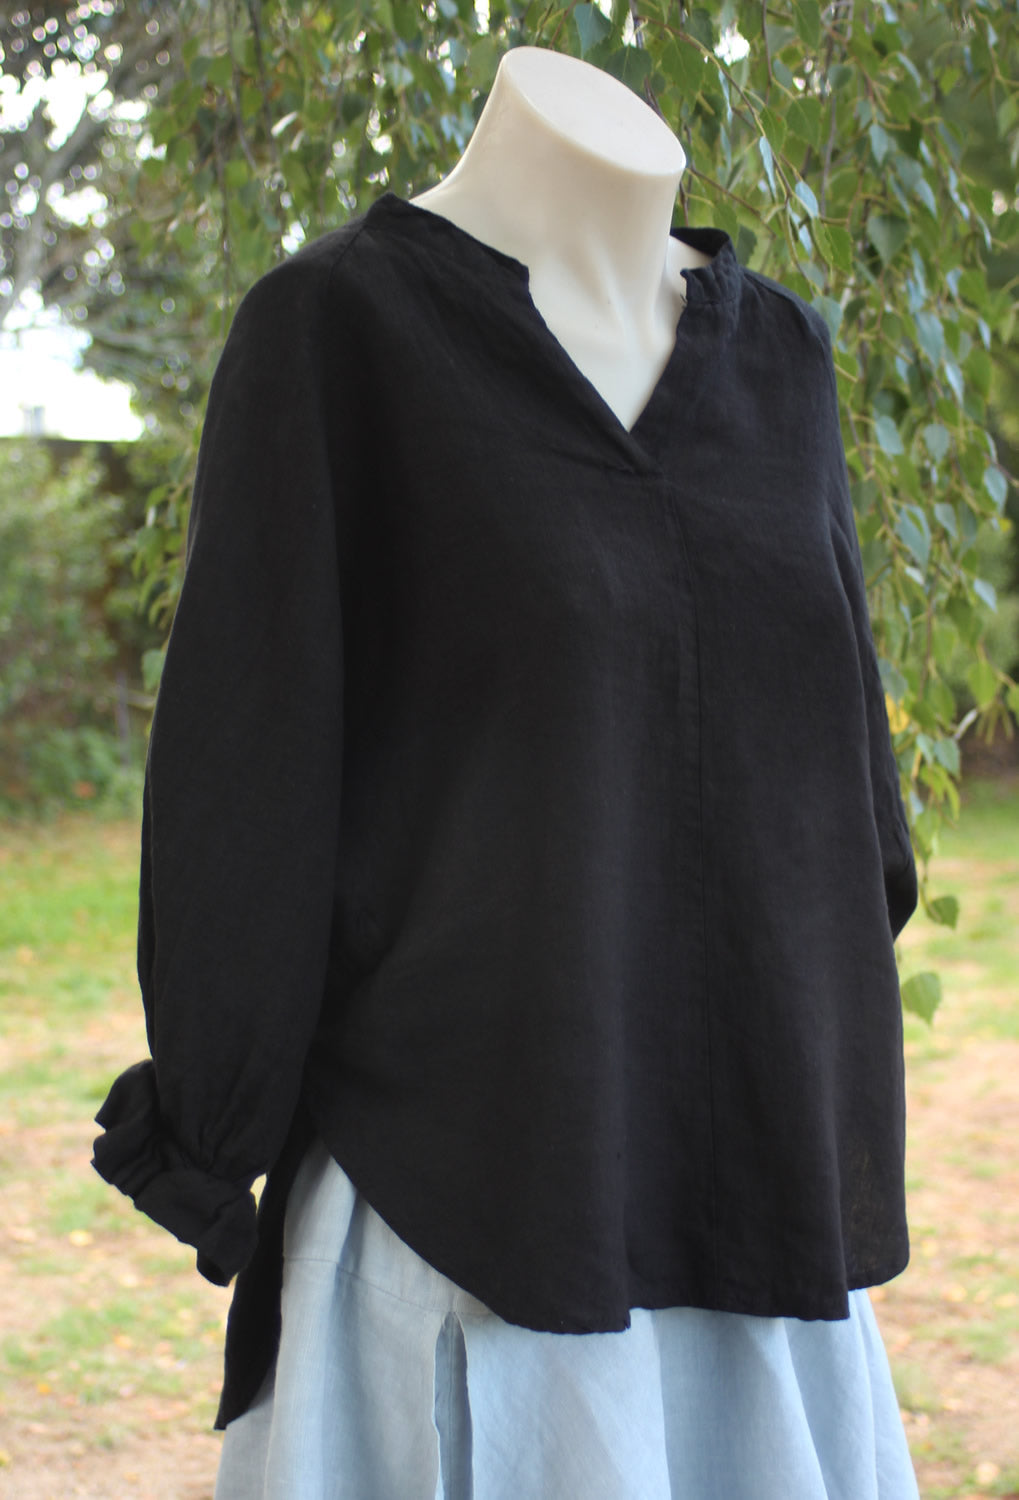 Black 100% Linen Prospect Shirt Mist Valley Clothing